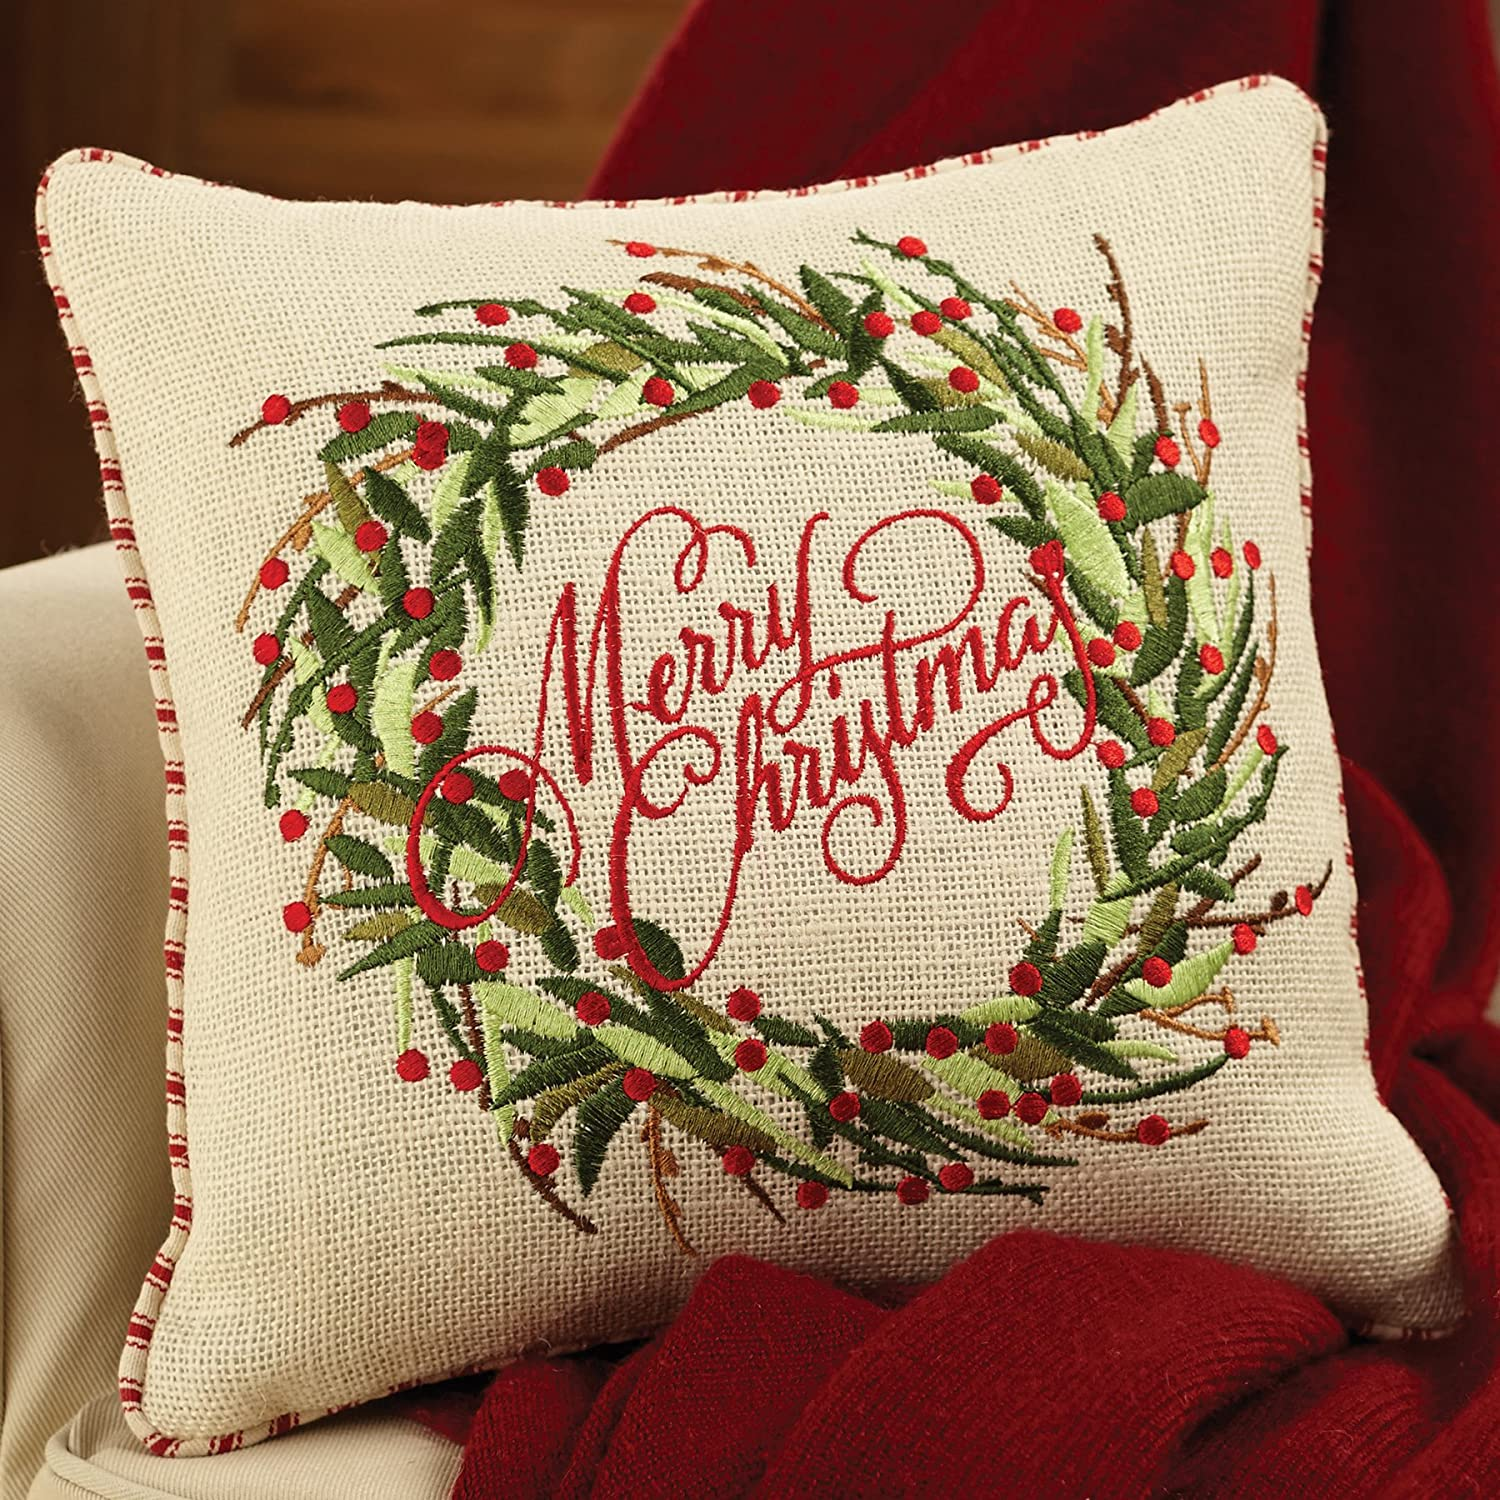 Mudpie Merry Christmas Burlap Pillow